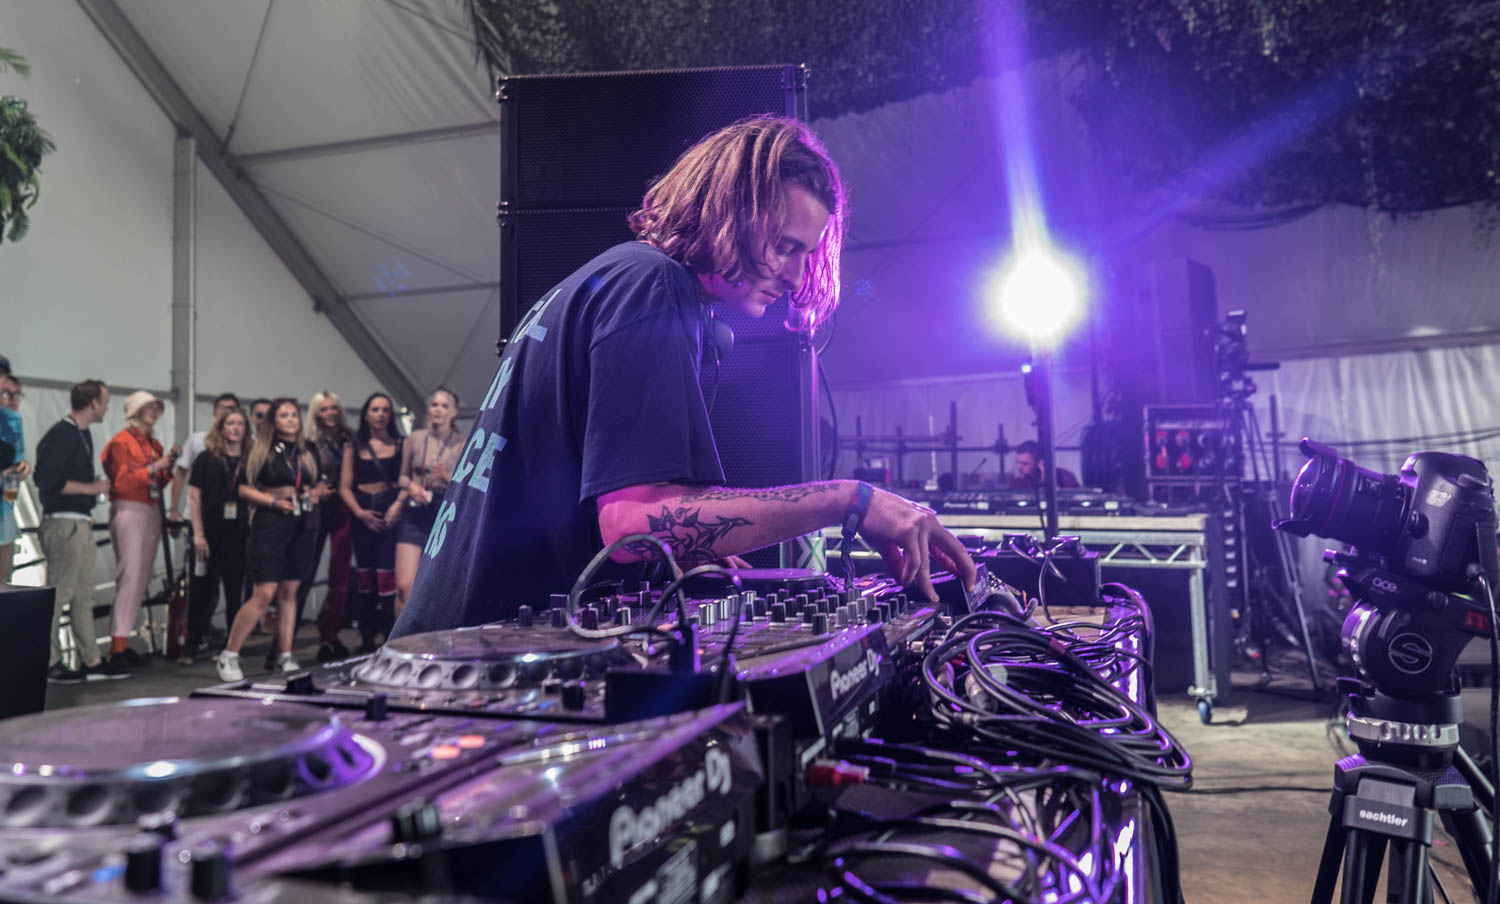 From Peggy Gou to A$AP Rocky: Parklife 2018 in photos